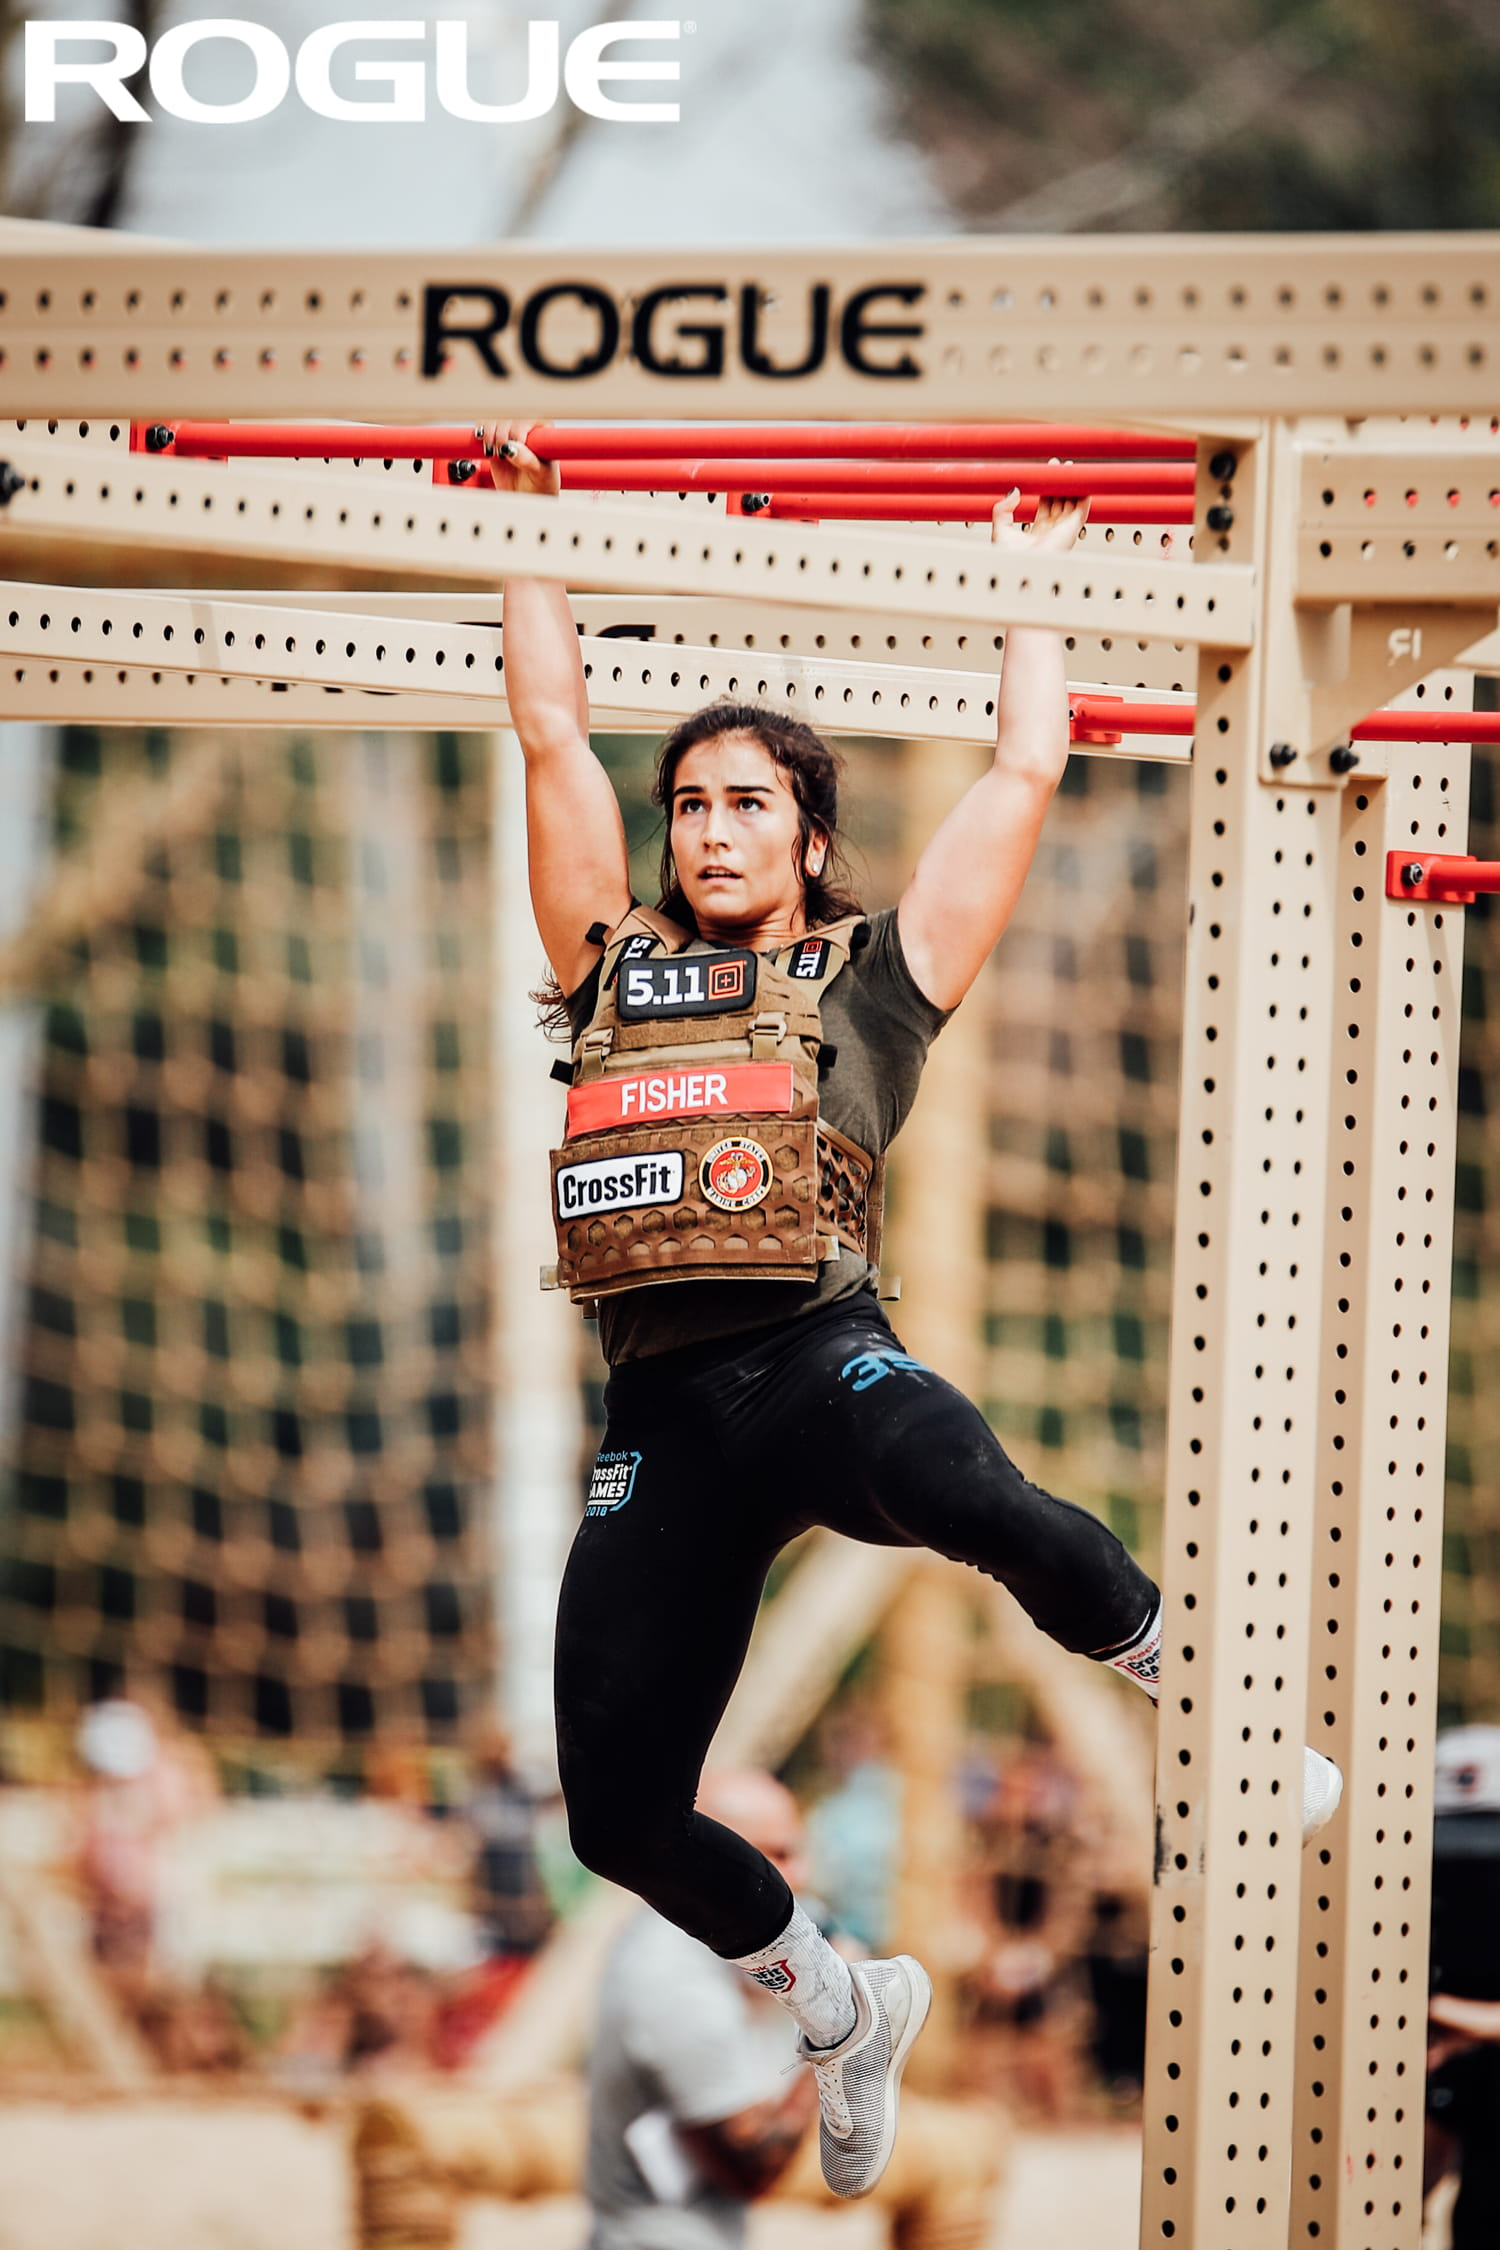 Amazing Action Shots of Lauren Fisher (and her Inspiring Message about Body Image)